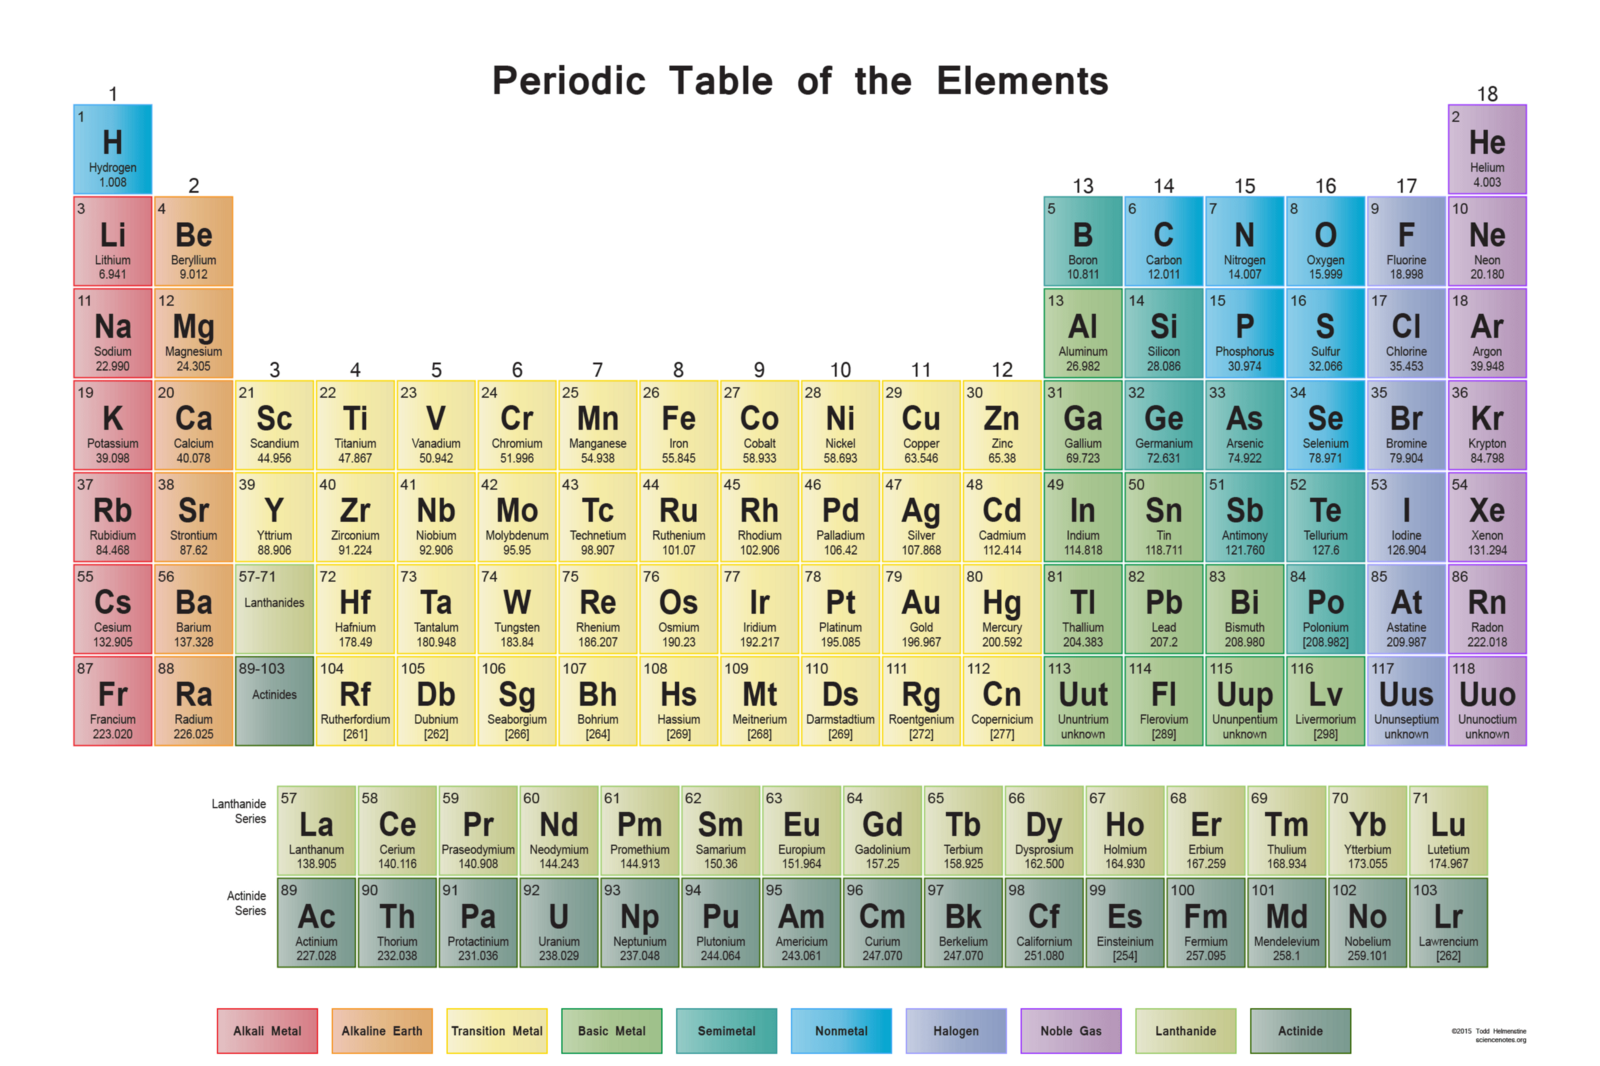 Why we might eat a full meal and still feel hungry john miller to our food which some people may not be aware of are minerals which we all remember from the periodic table of elements we studied in school gamestrikefo Choice Image